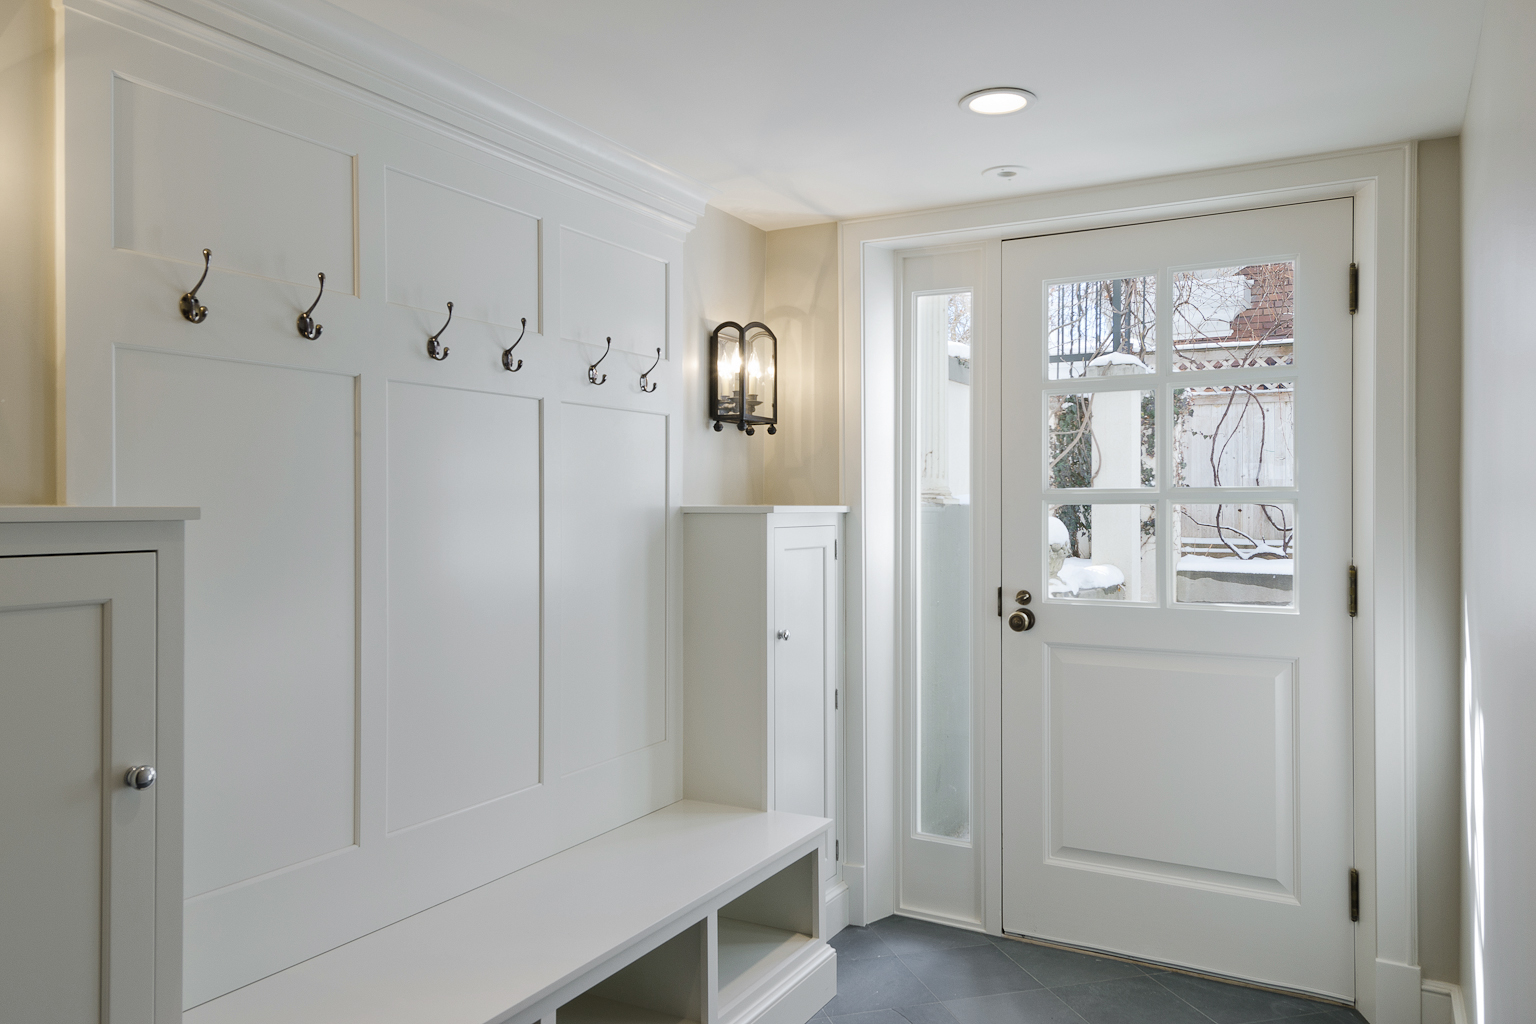 laundry room ideas for small spaces natural home design best ideas for your transitional space karry home solutions